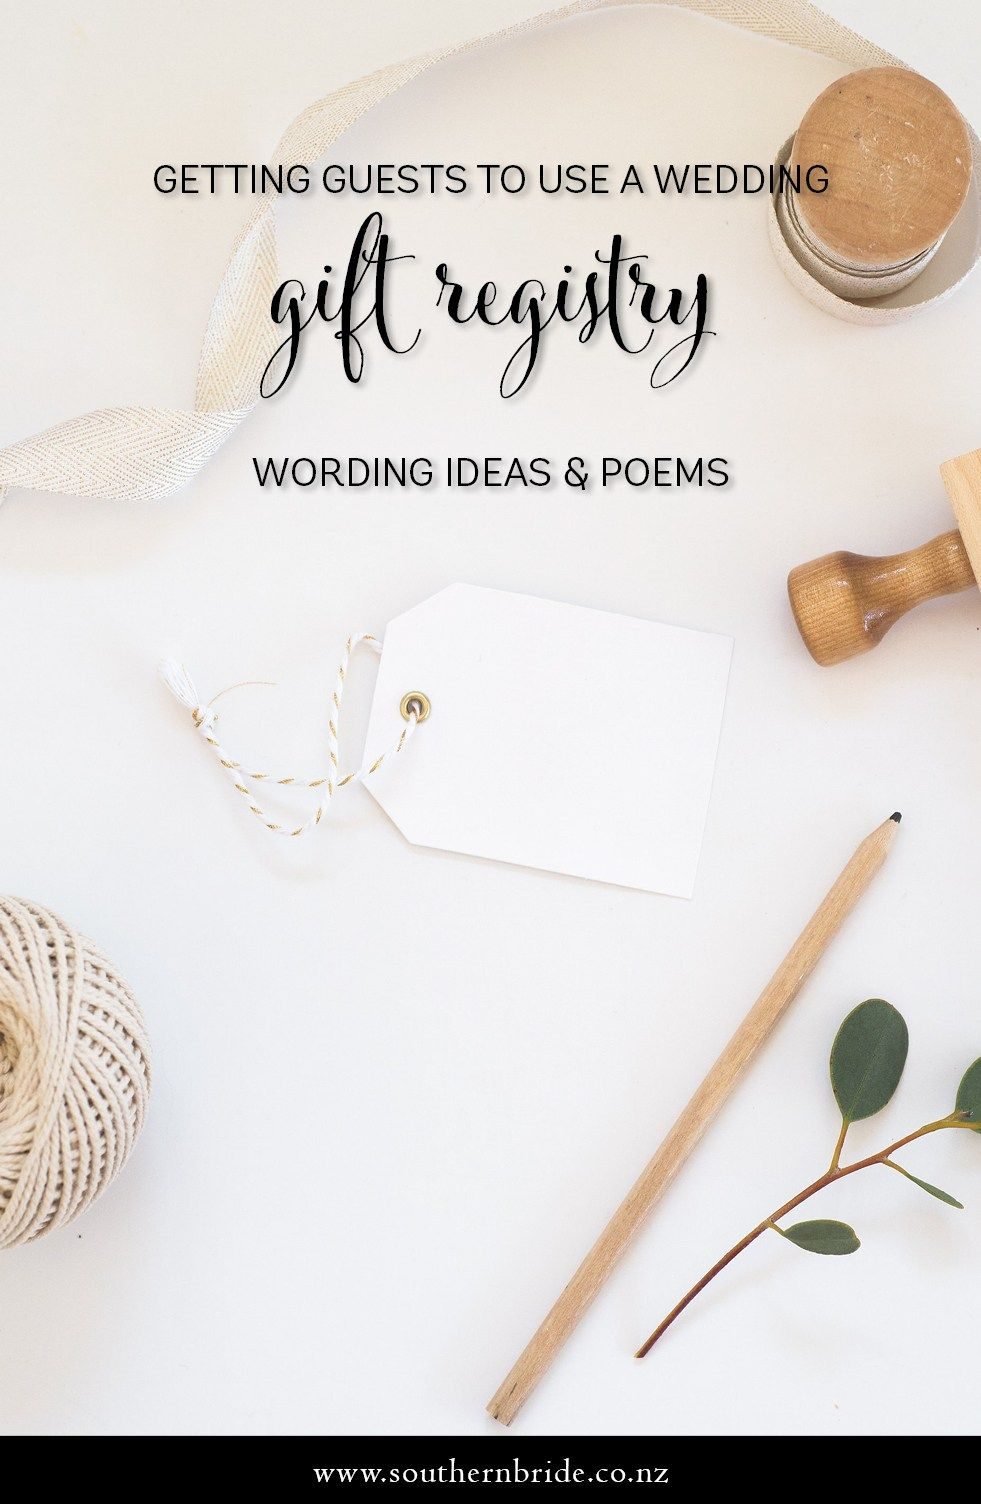 Wedding Gift Registry Wording Ideas How to ask for gifts